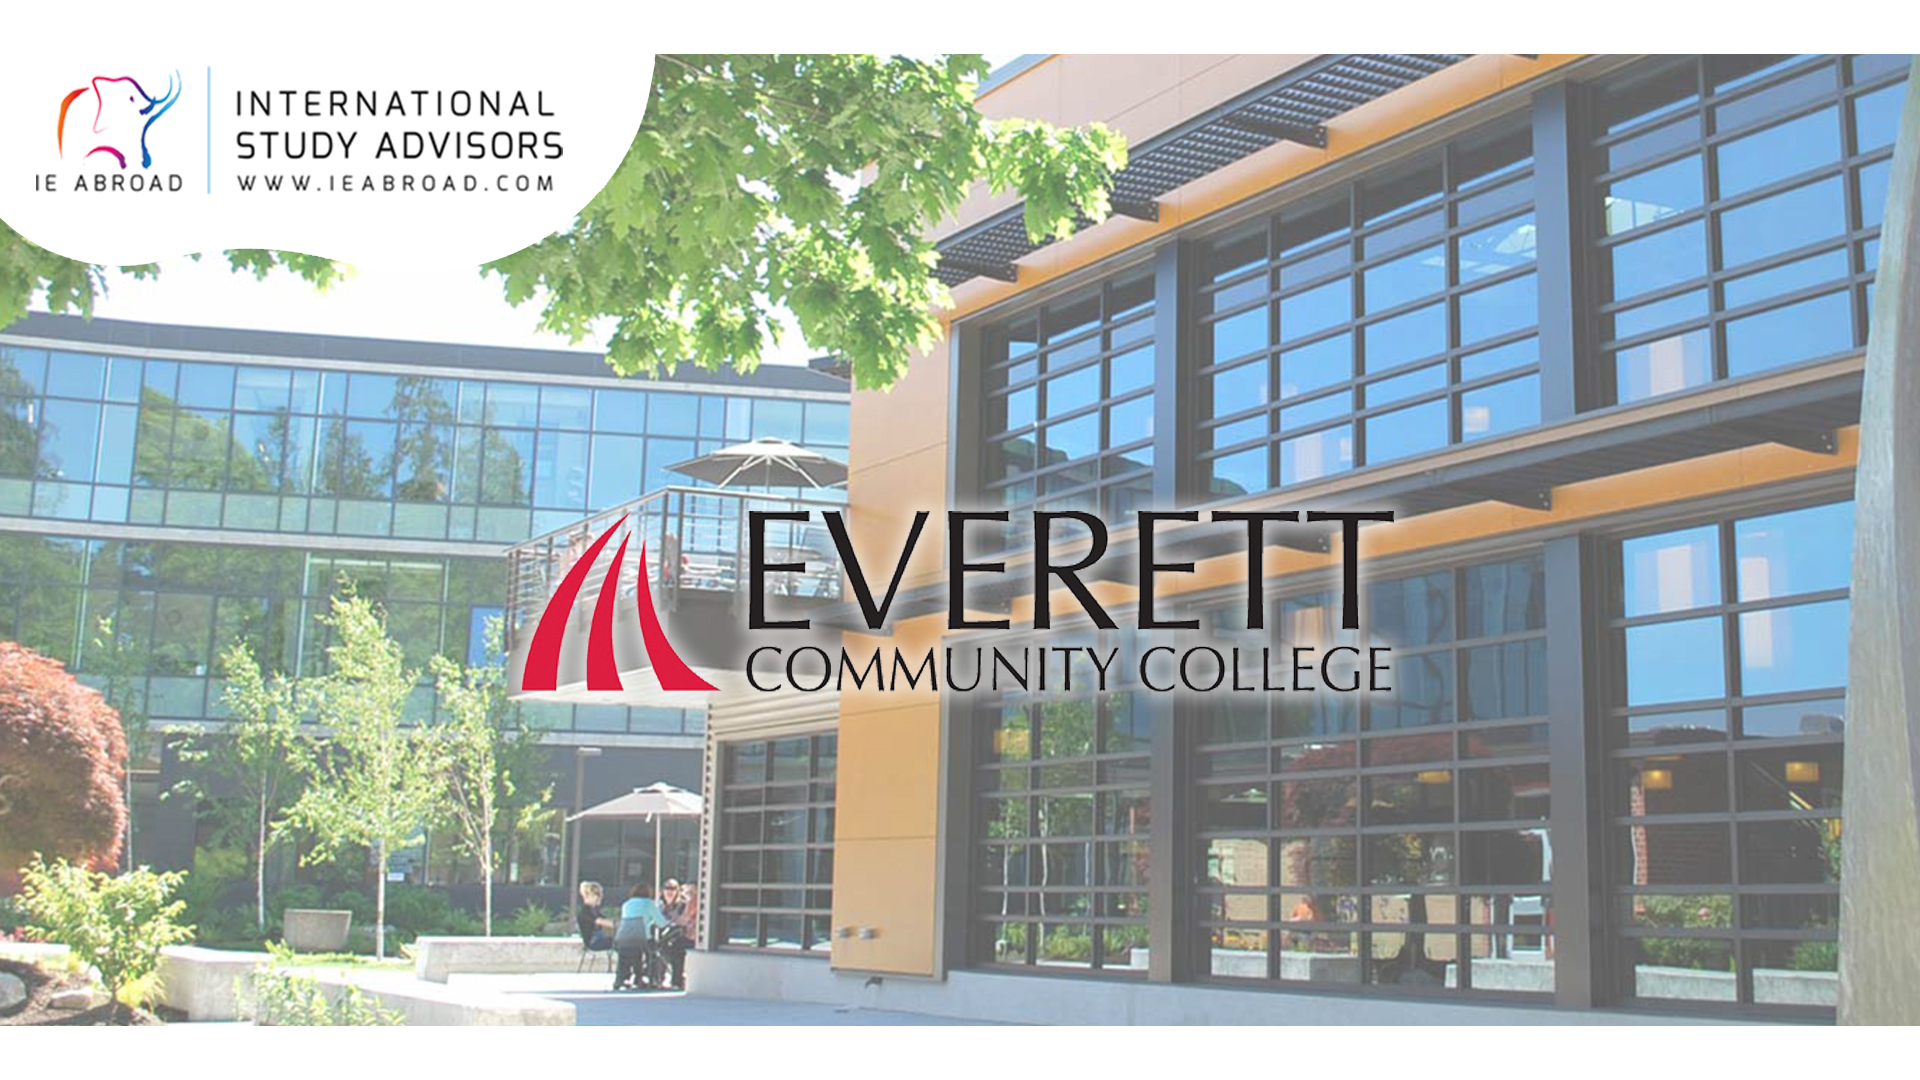 Fast and Curious: Everett Community College